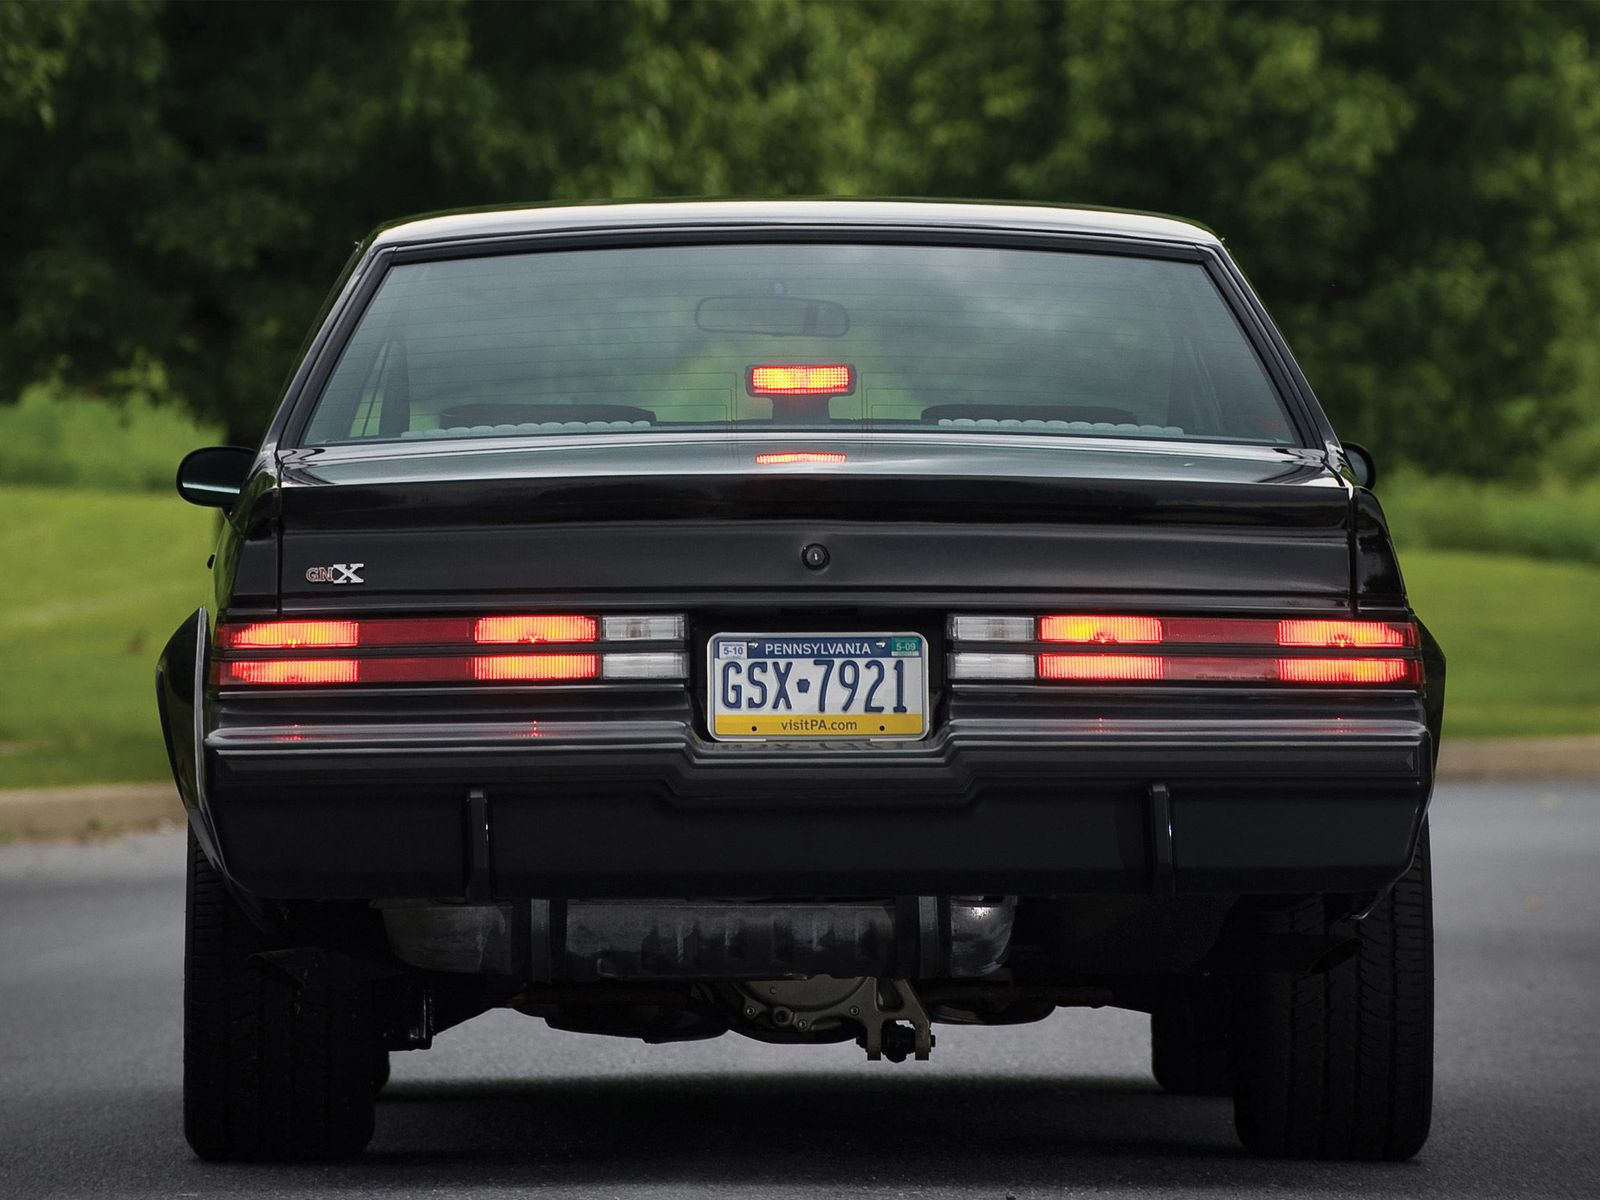 1987 Buick Regal Grand National GNX - Dark-Cars Wallpapers